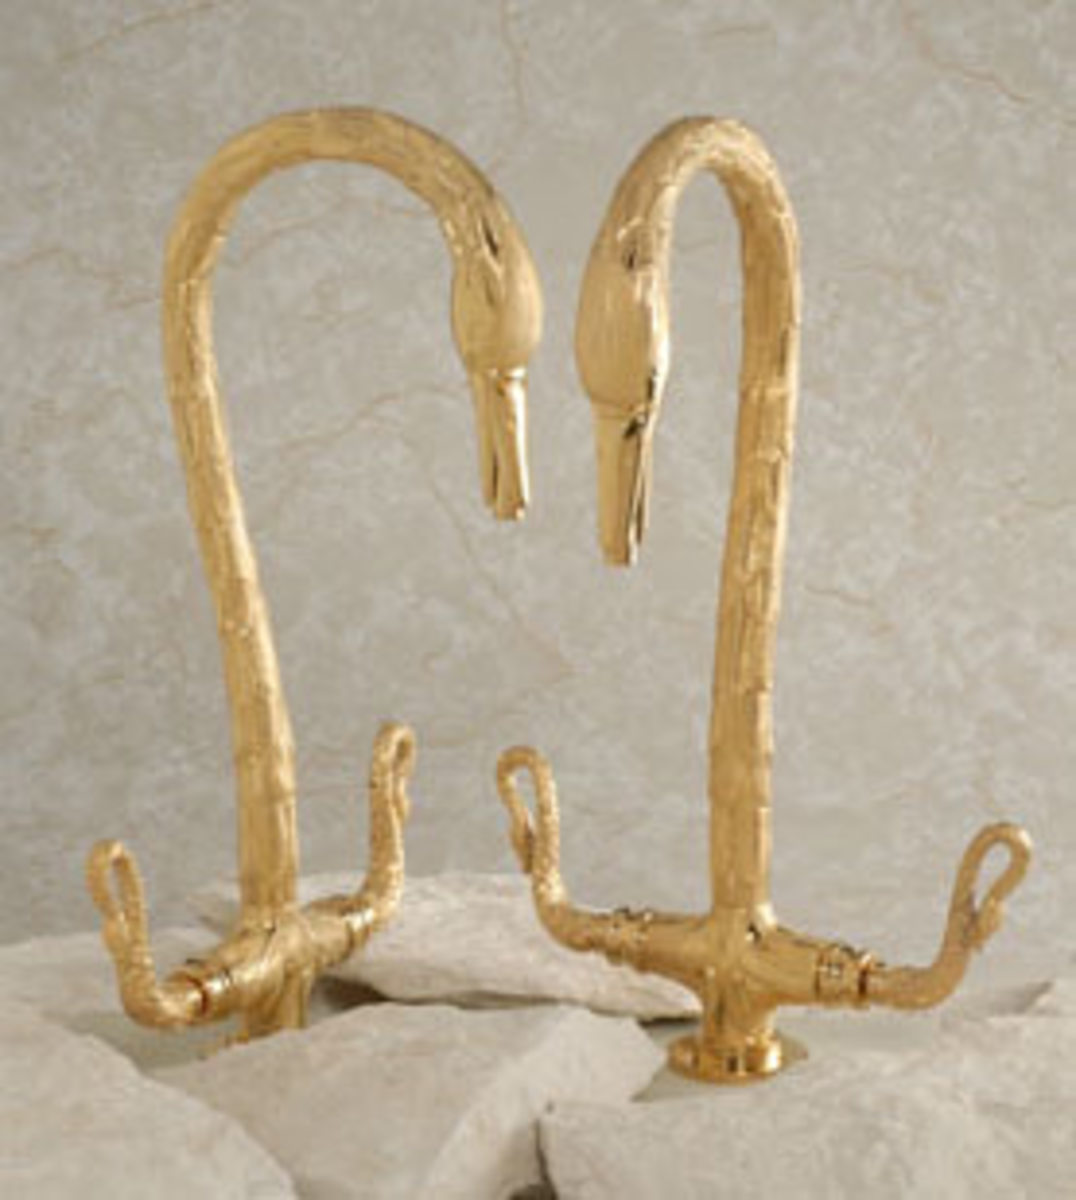 swan like bathroom fixtures - jewelry for your bathroom